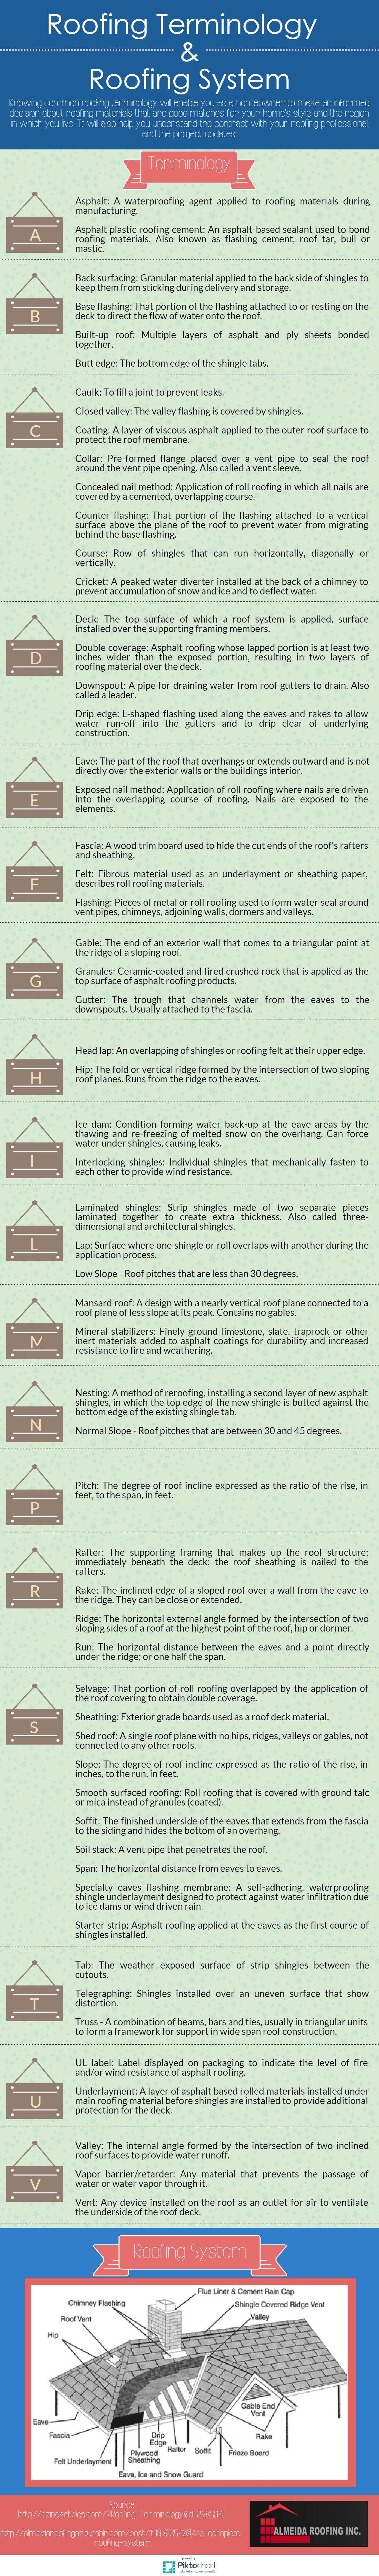 Shared An Infographic Illustrating Basic Roofing